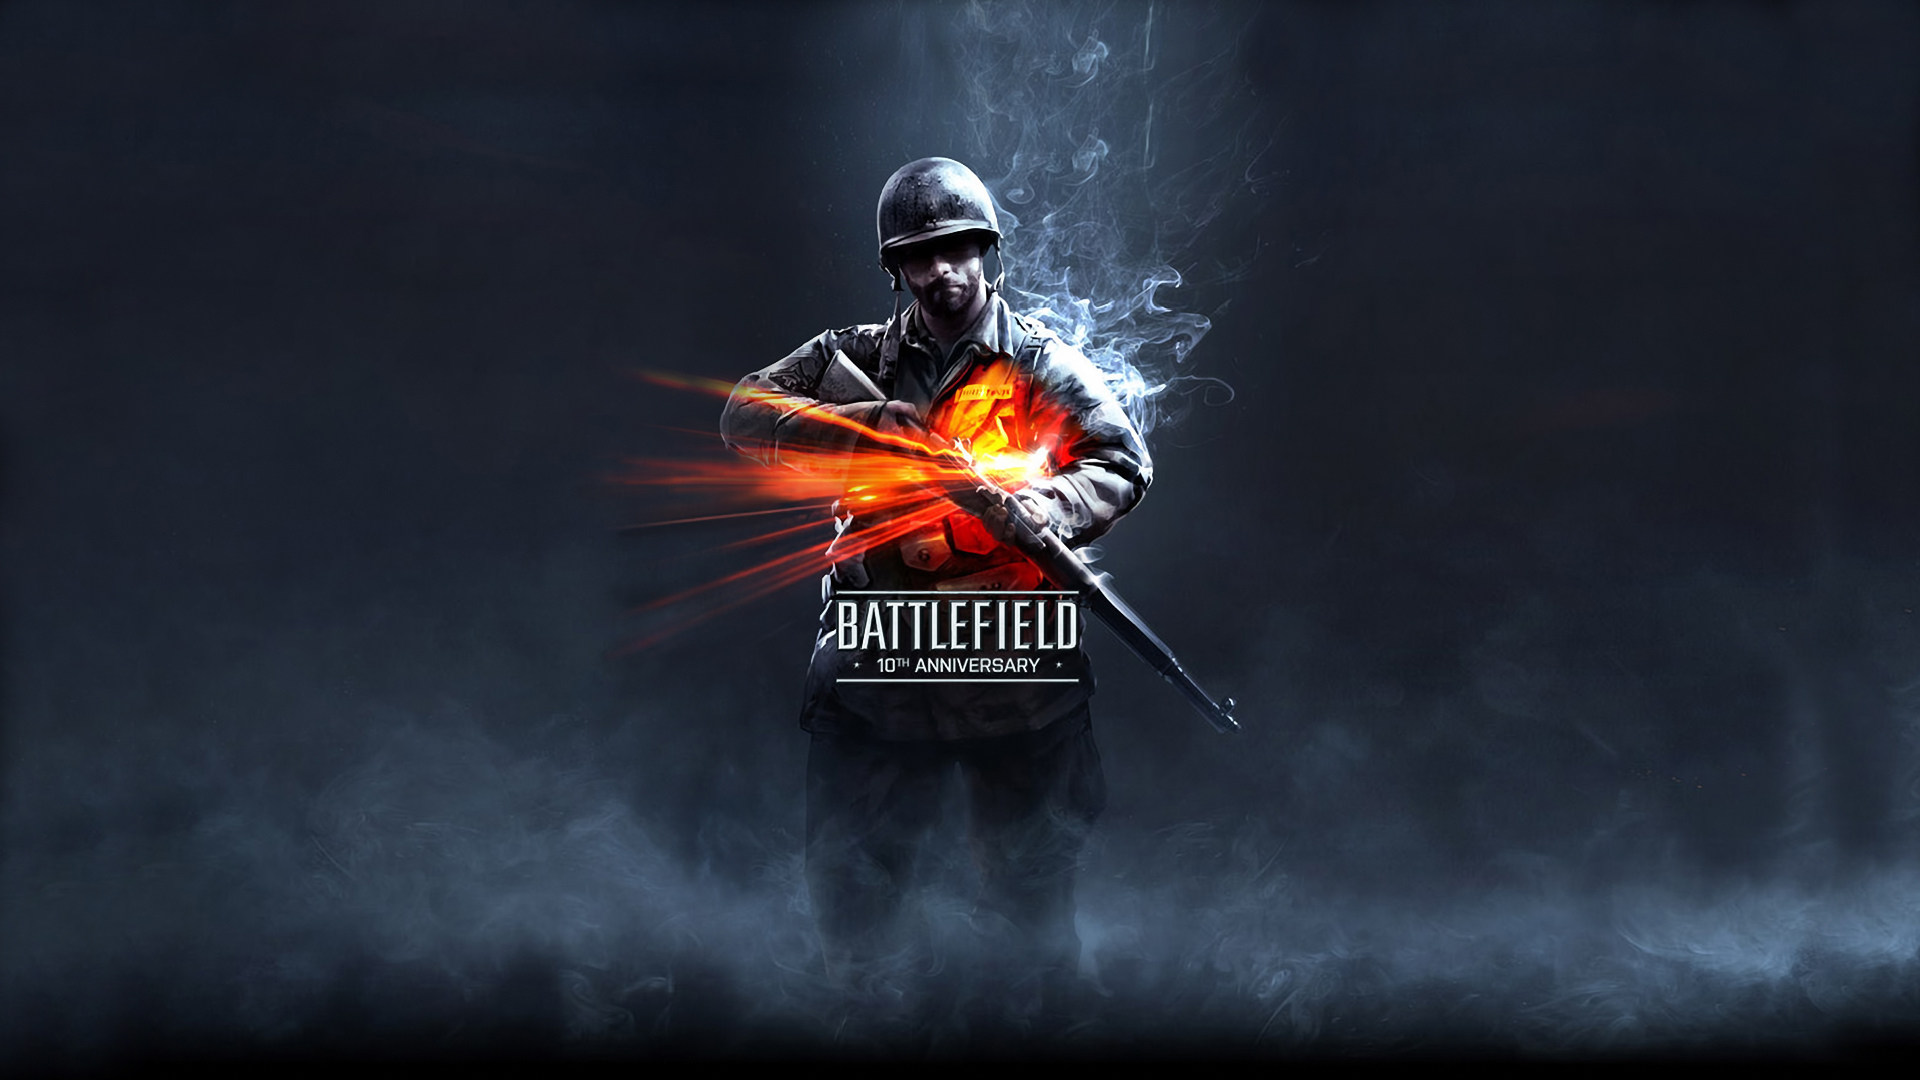 battlefield 10th anniversary facebook covers | wallpapers hd